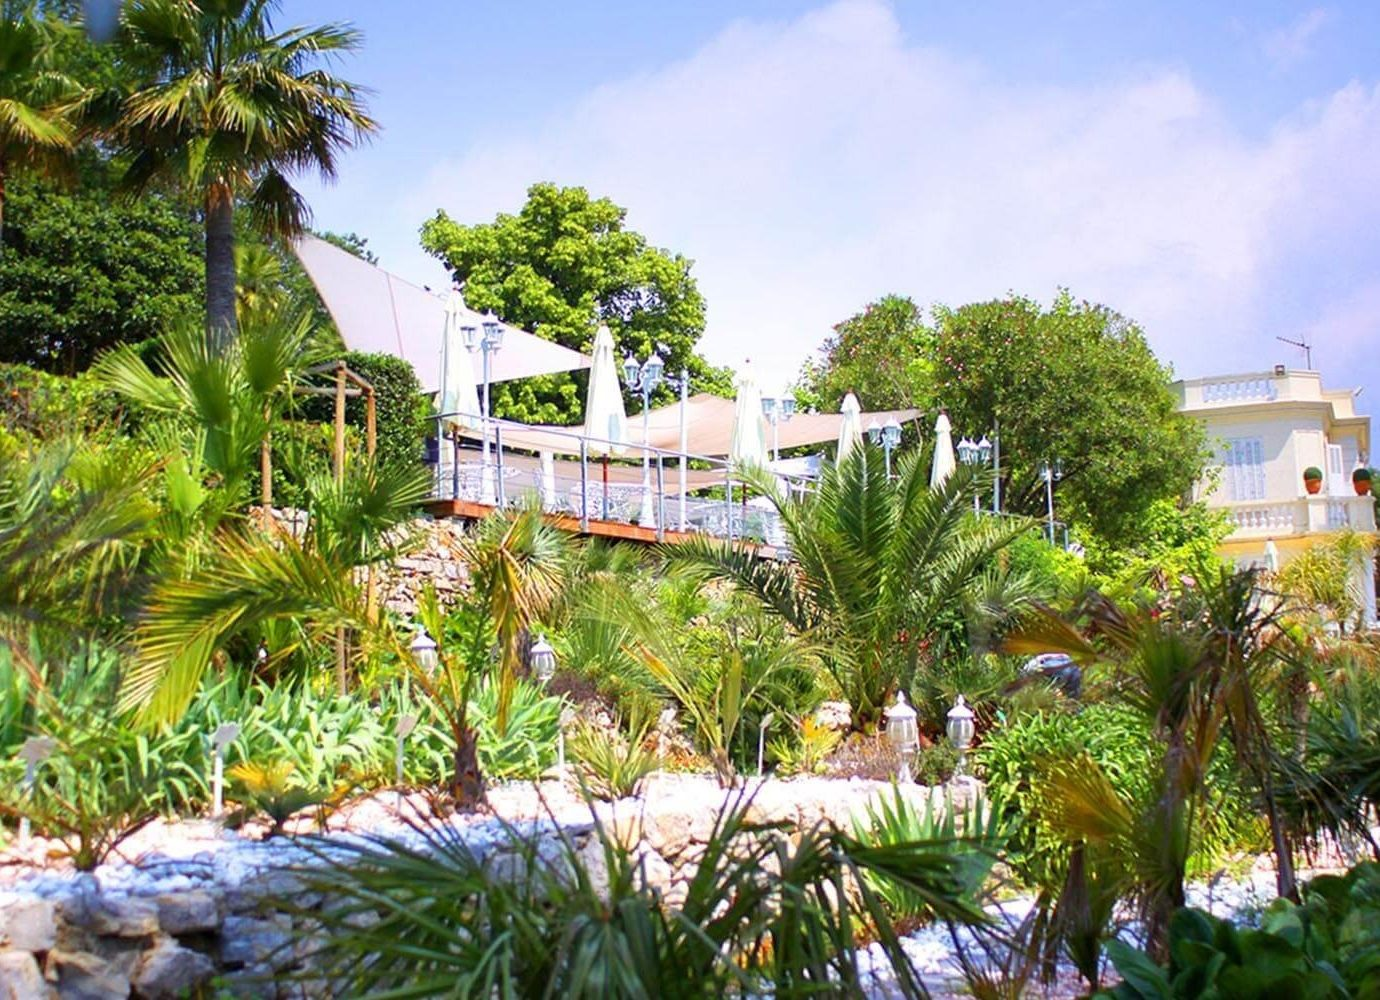 Road Trips Trip Ideas tree outdoor vegetation property arecales plant palm tree Resort real estate home estate sky house Villa water tropics landscaping landscape outdoor structure leisure Garden botanical garden cottage palm